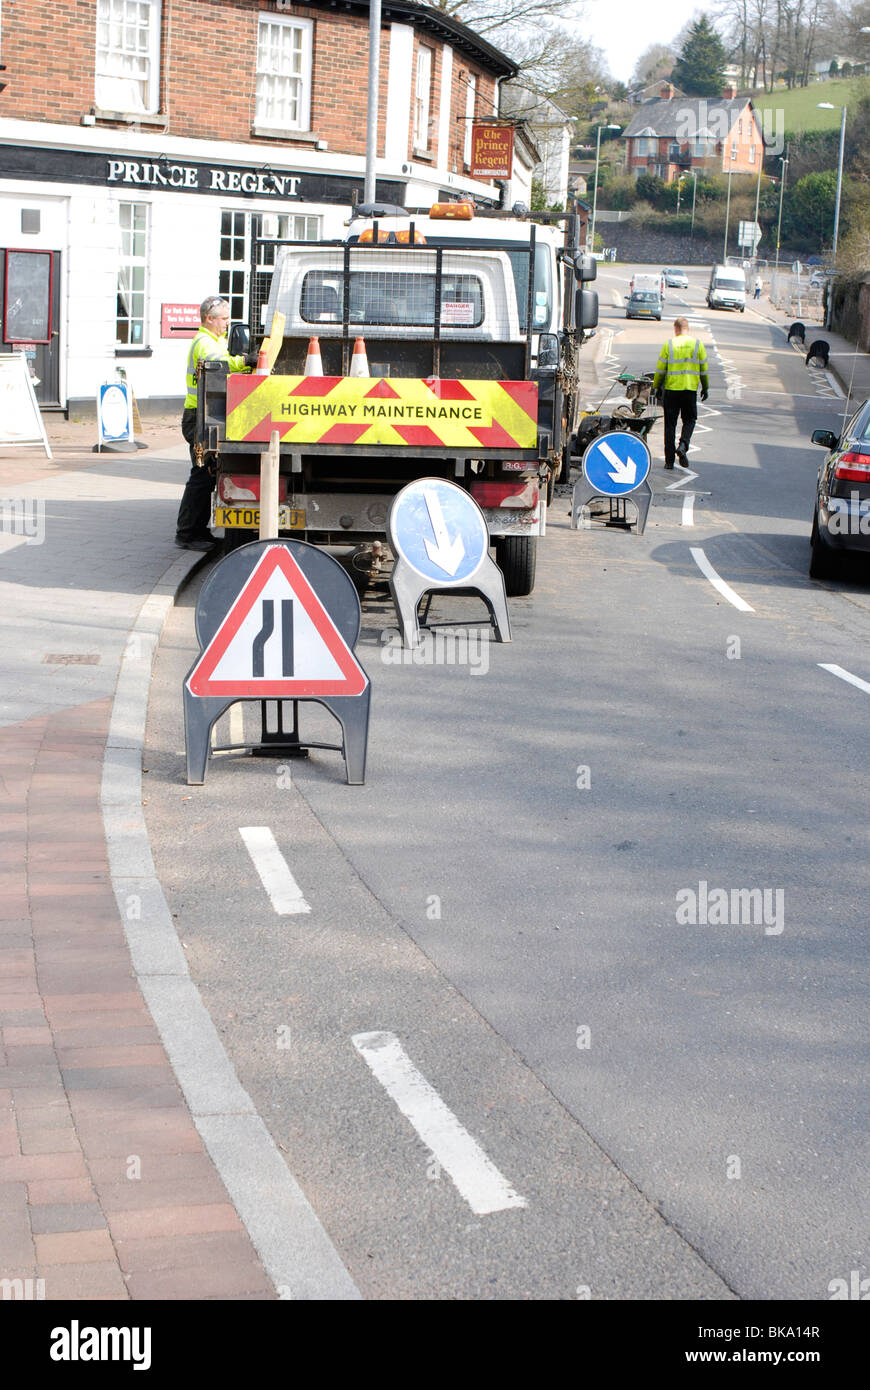 Highways maintenance roadworks - Stock Image